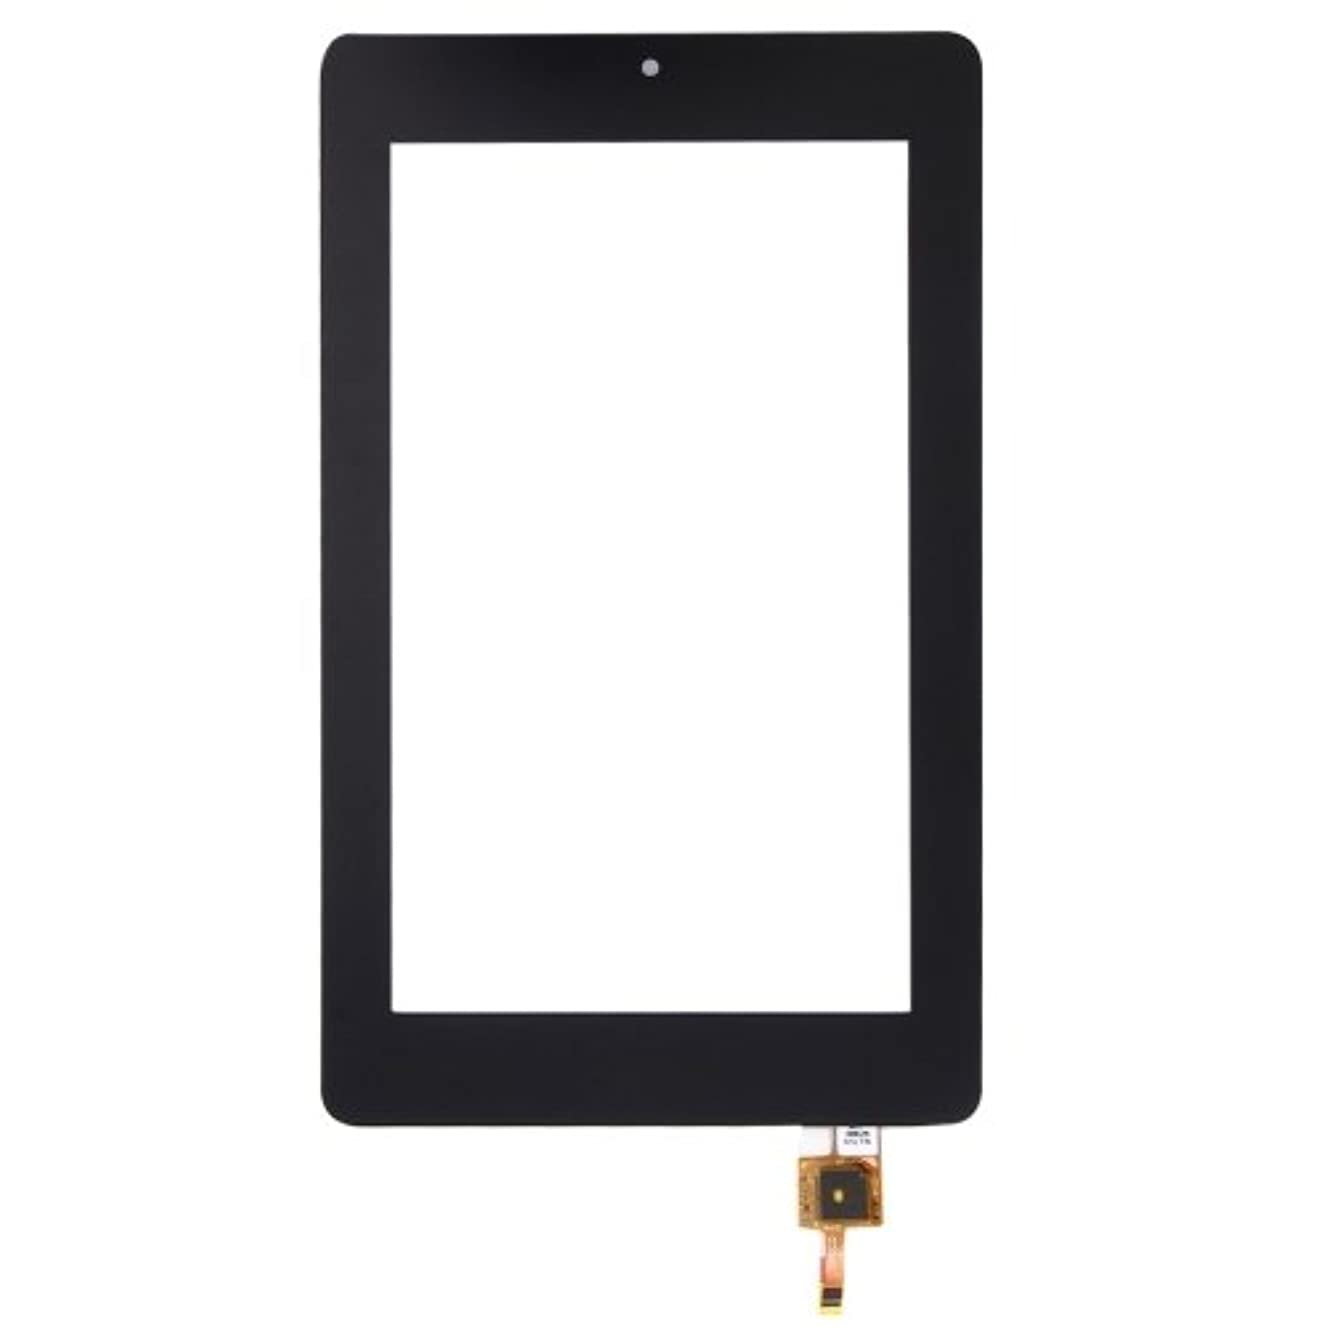 CAIFENG Repair Replacement Parts Touch Panel for Acer Iconia One 7 / B1-730HD(Black) Phone Spare Parts (Color : Black)